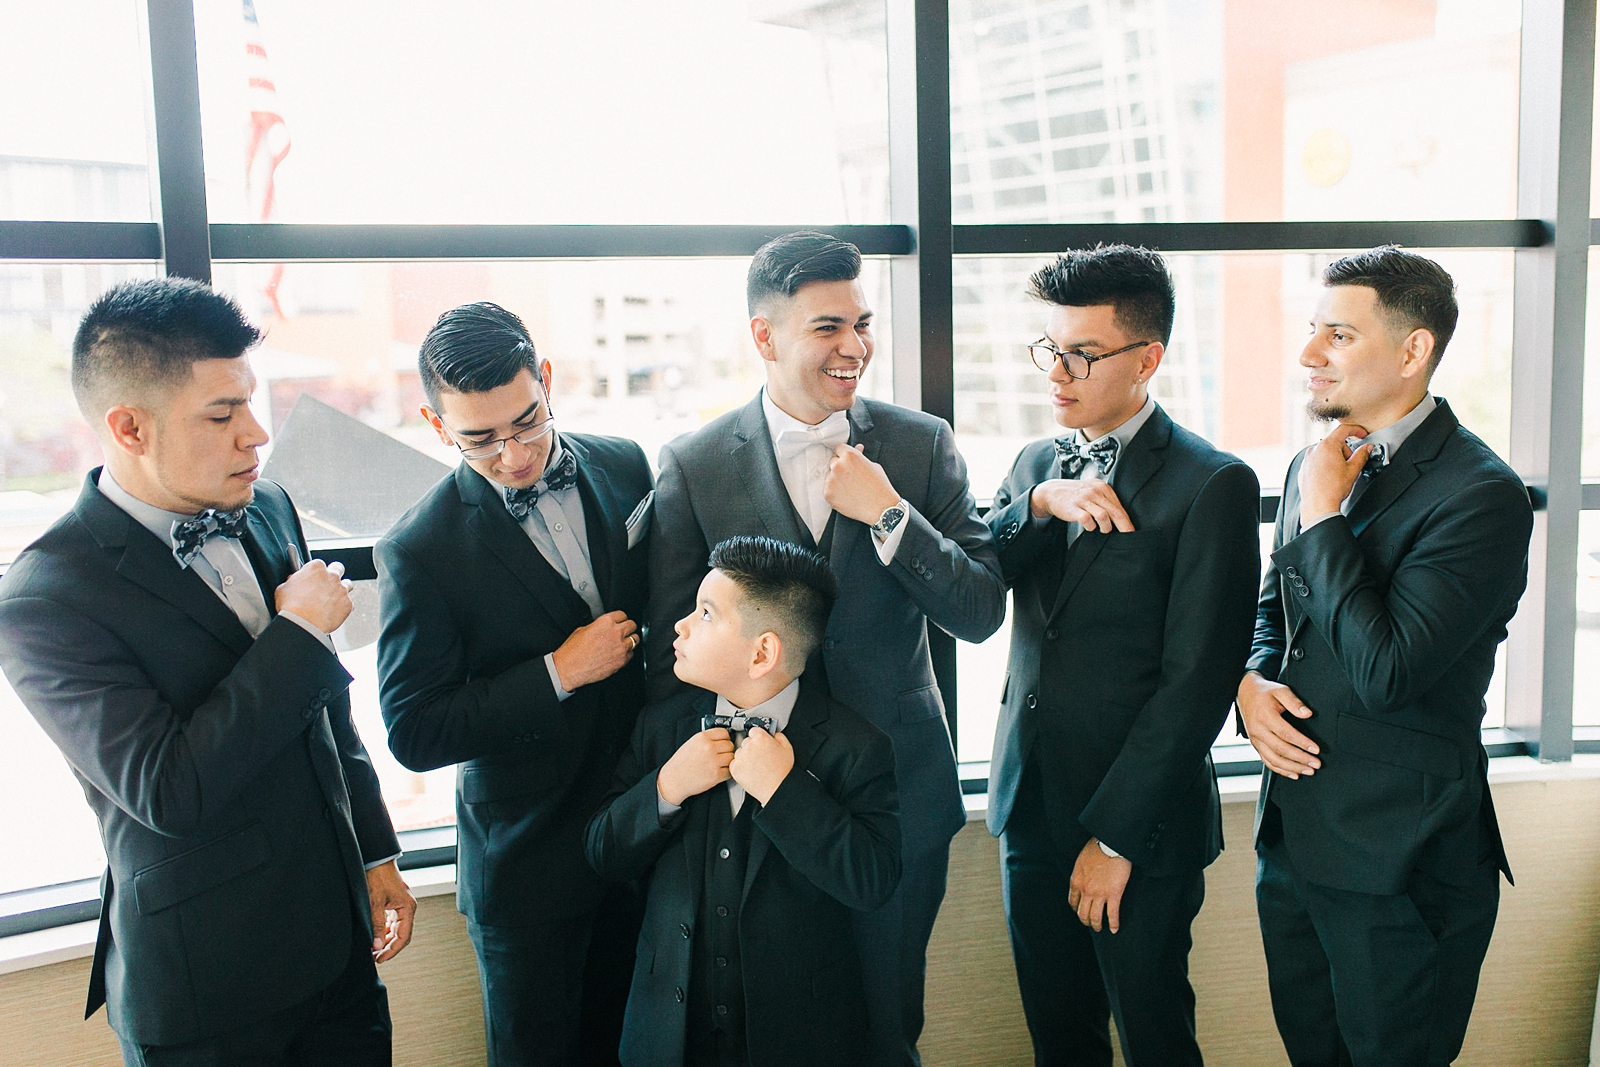 Cache Valley Logan Traditional Catholic Wedding Ceremony in a cathedral, Utah wedding photography, groom and groomsmen getting ready photos